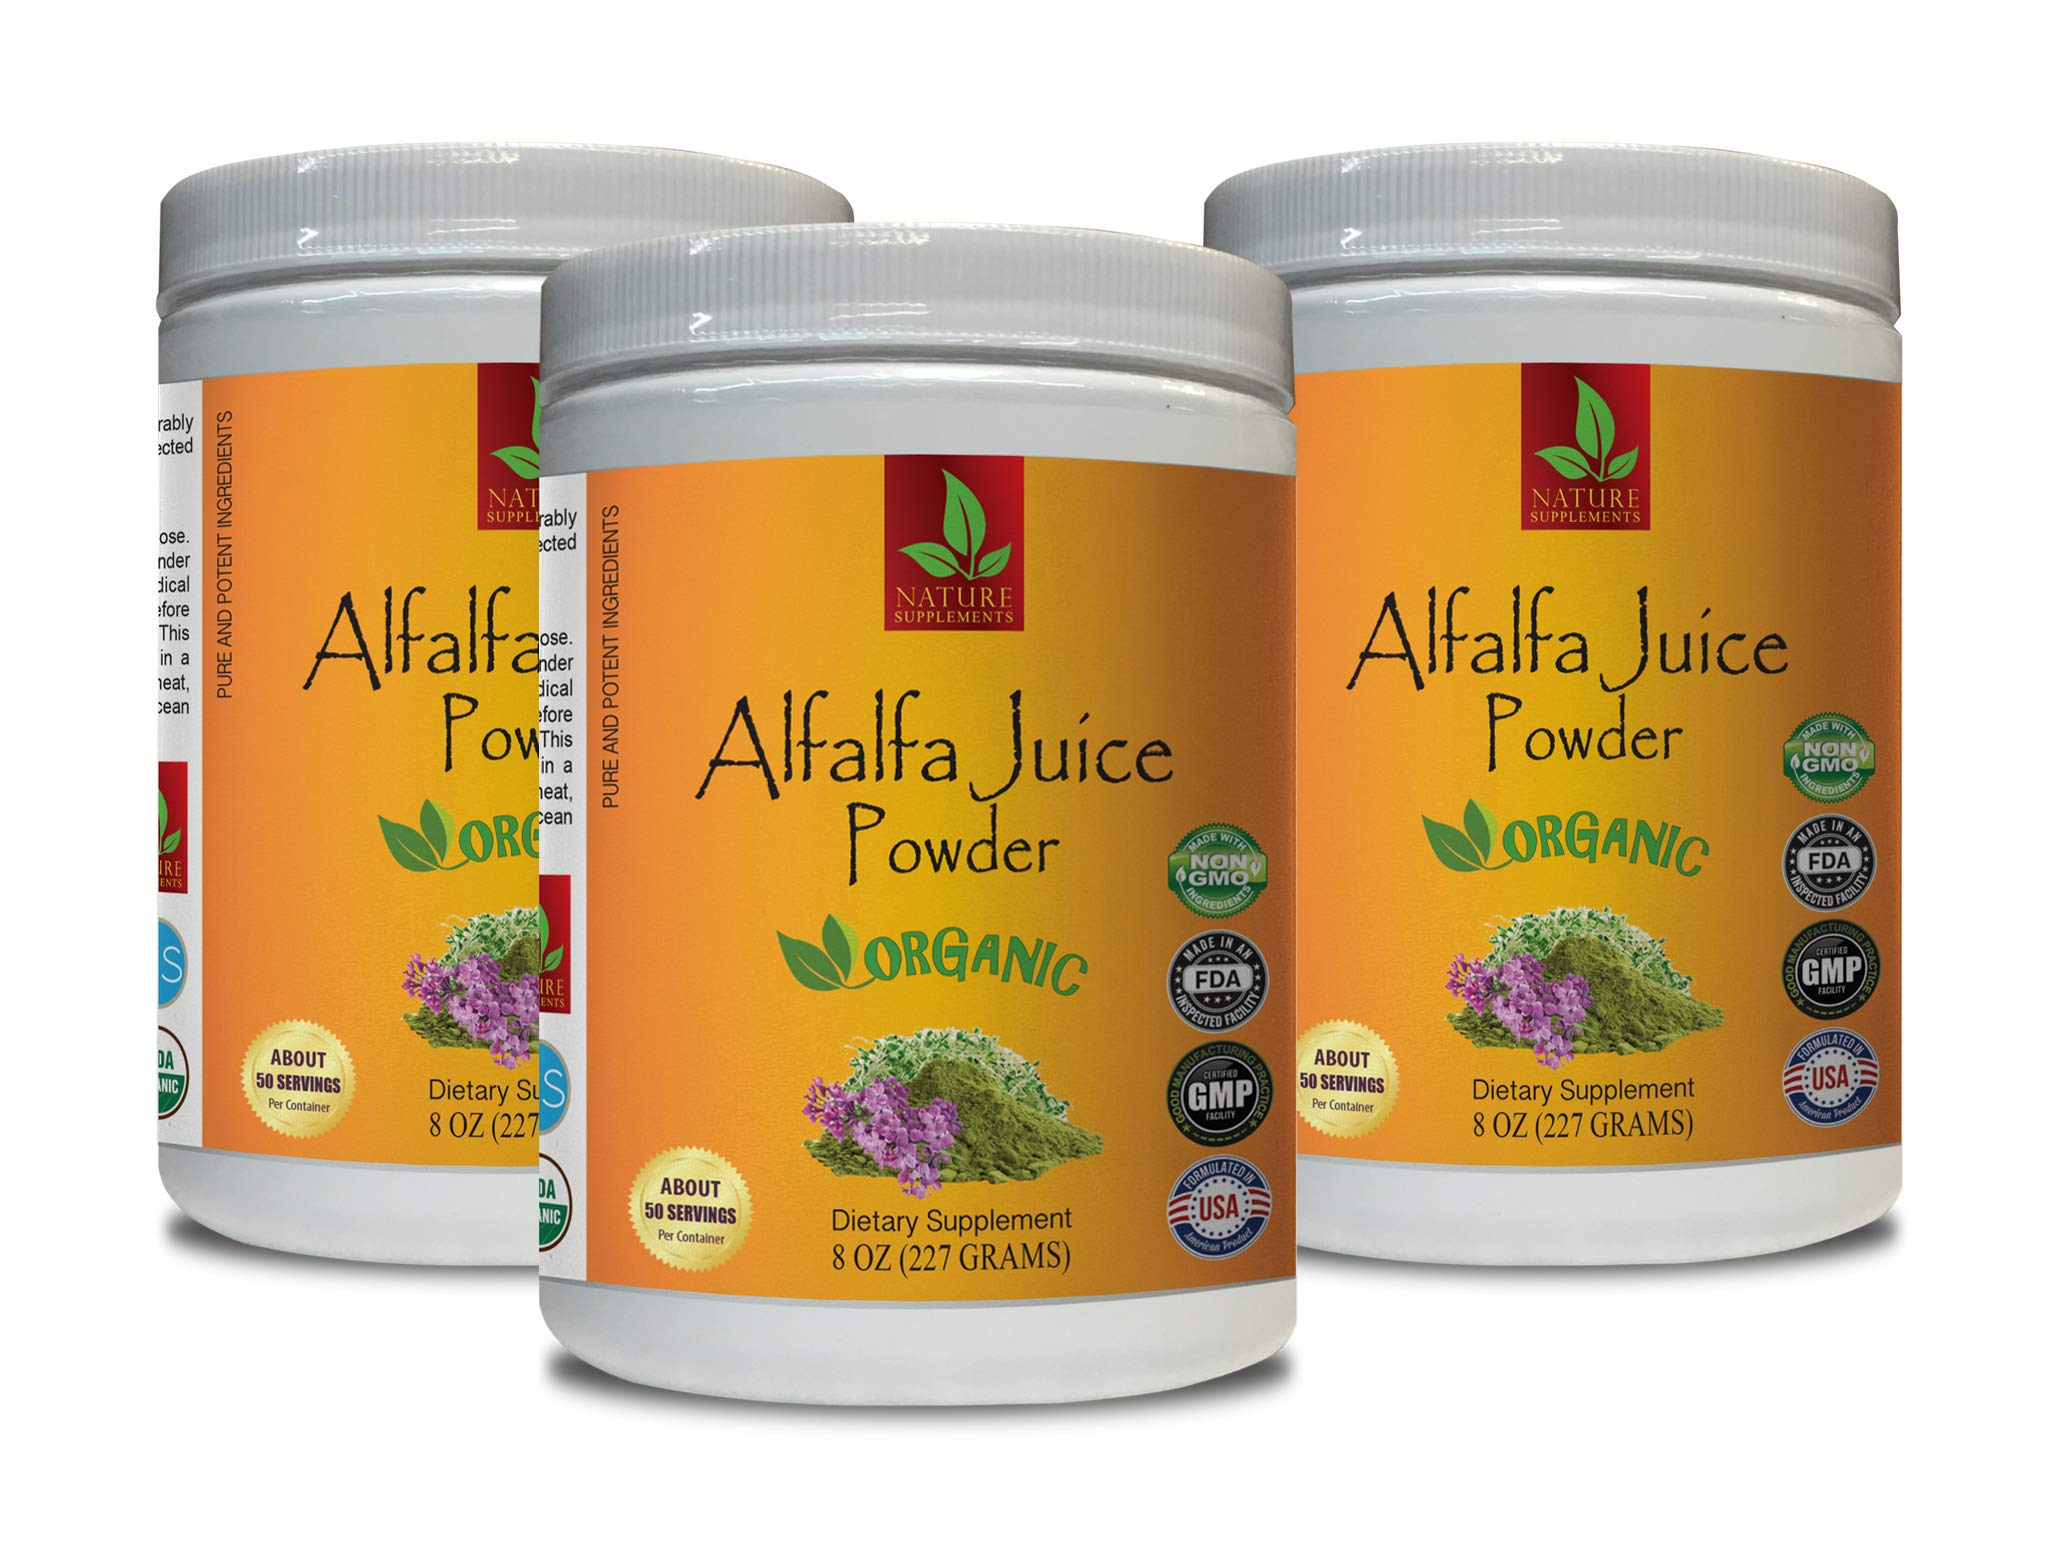 Cholesterol Supplement - Alfalfa Juice Organic Powder - Pure and Potent Ingredients - Powder Alfalfa - 3 Cans 24 OZ (150 Servings)